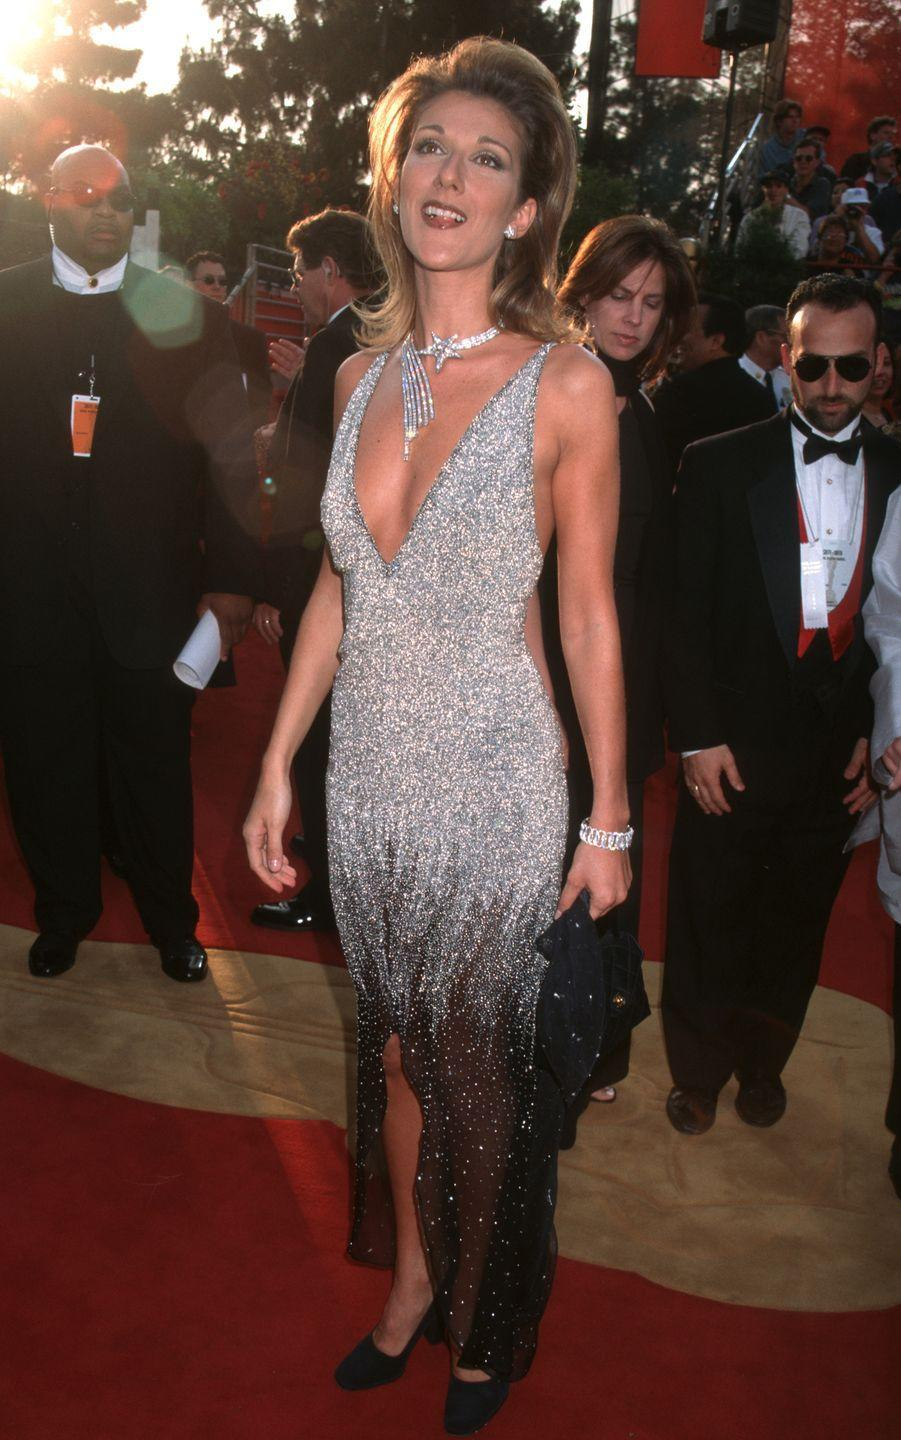 <p>If you couldn't tell by now, Dion has a penchant for sparkles. This plunging silver gown turned heads, and the added celestial necklace and earrings made the singer shine even more.</p>